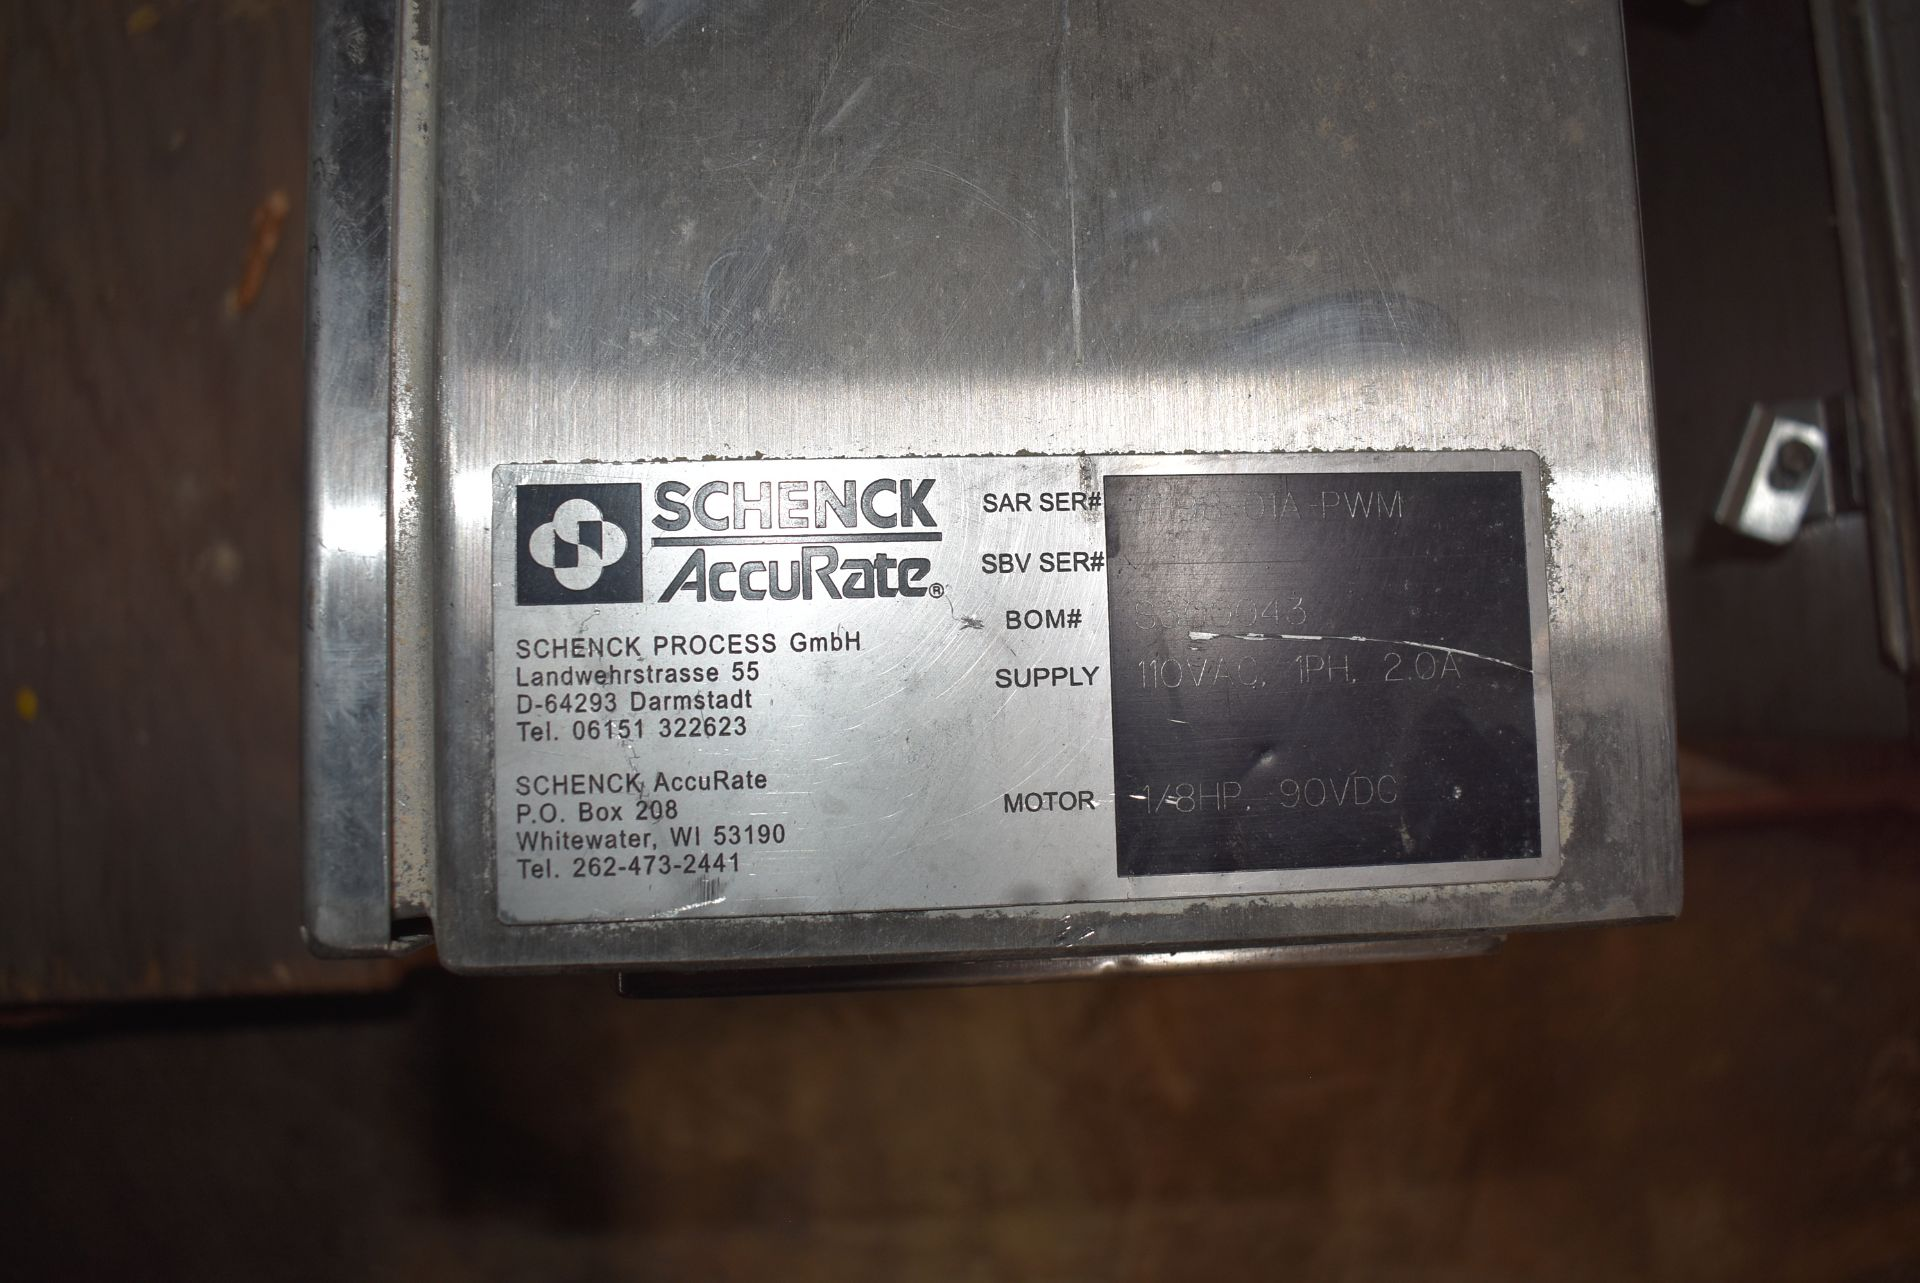 Schenck/Accrate Hopper, Feeder, and Hardy Instruments Control - Image 2 of 3